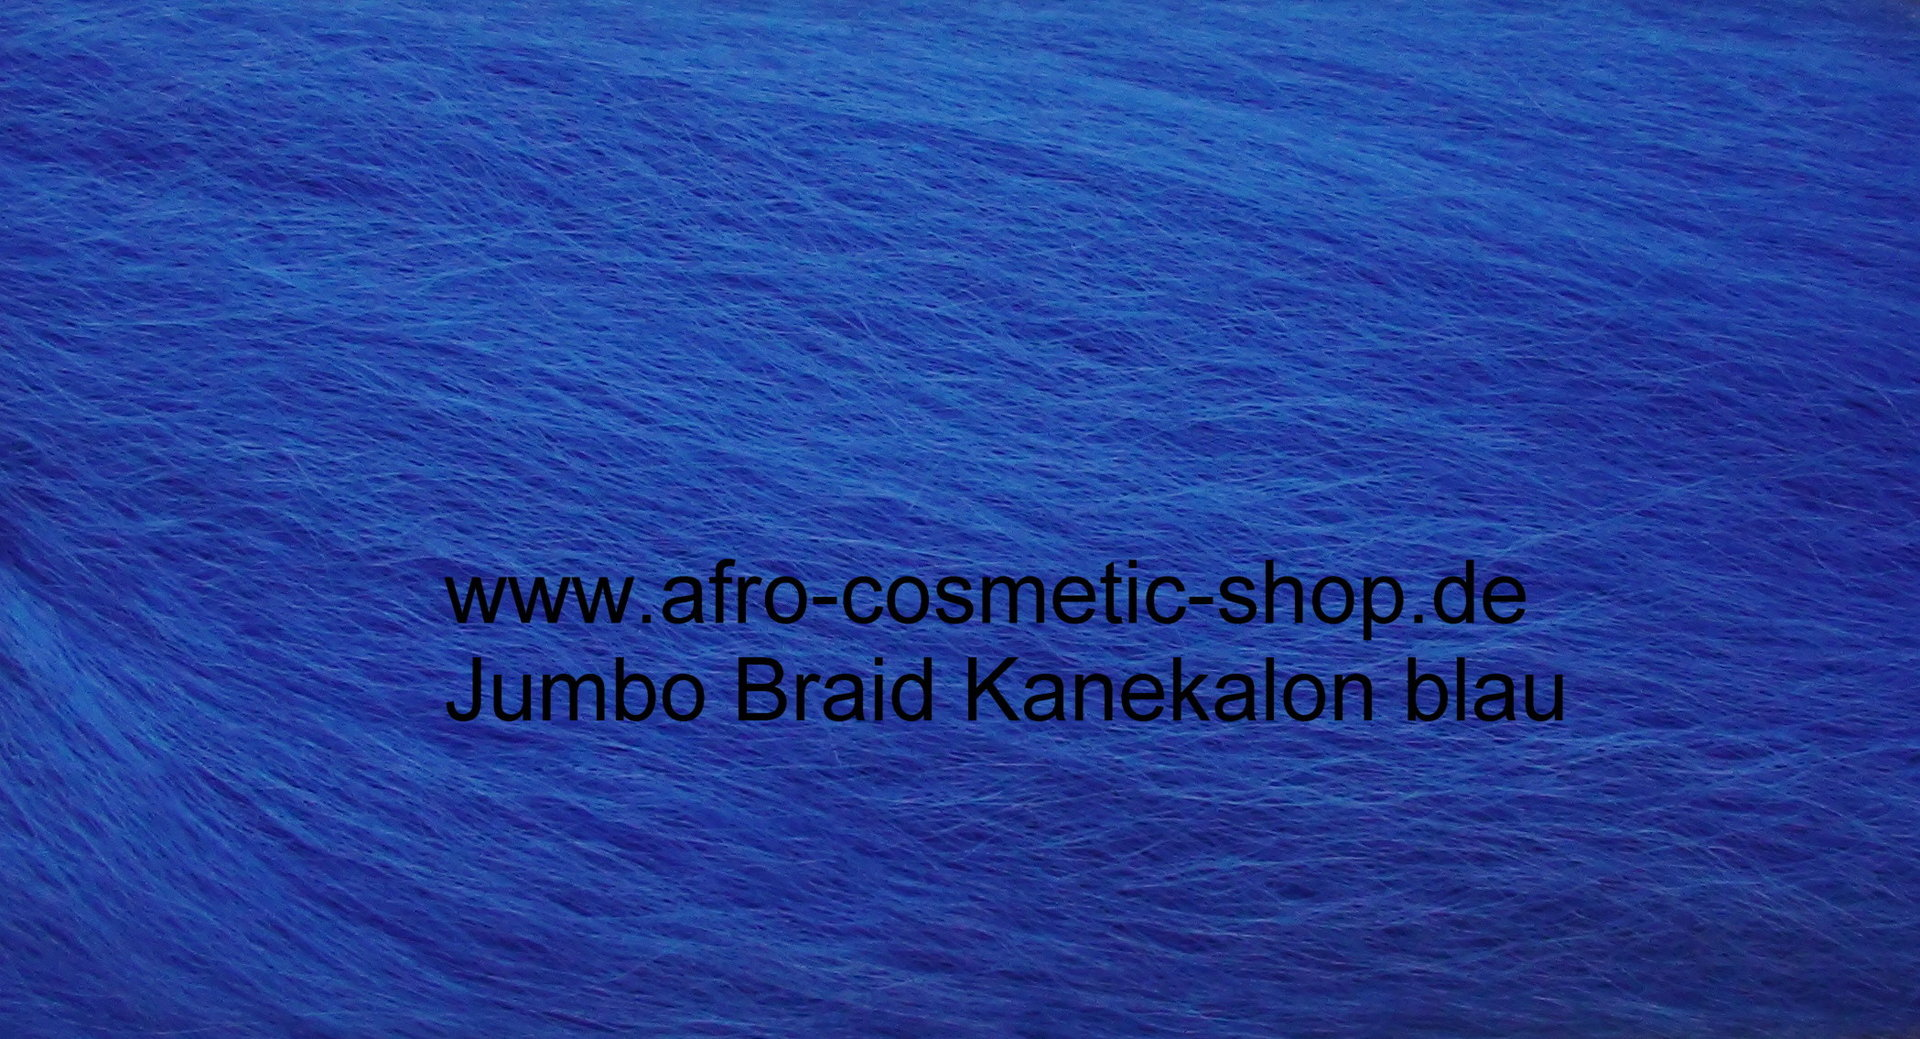 jumbo braid kanekalon farbe blau afro cosmetic shop. Black Bedroom Furniture Sets. Home Design Ideas